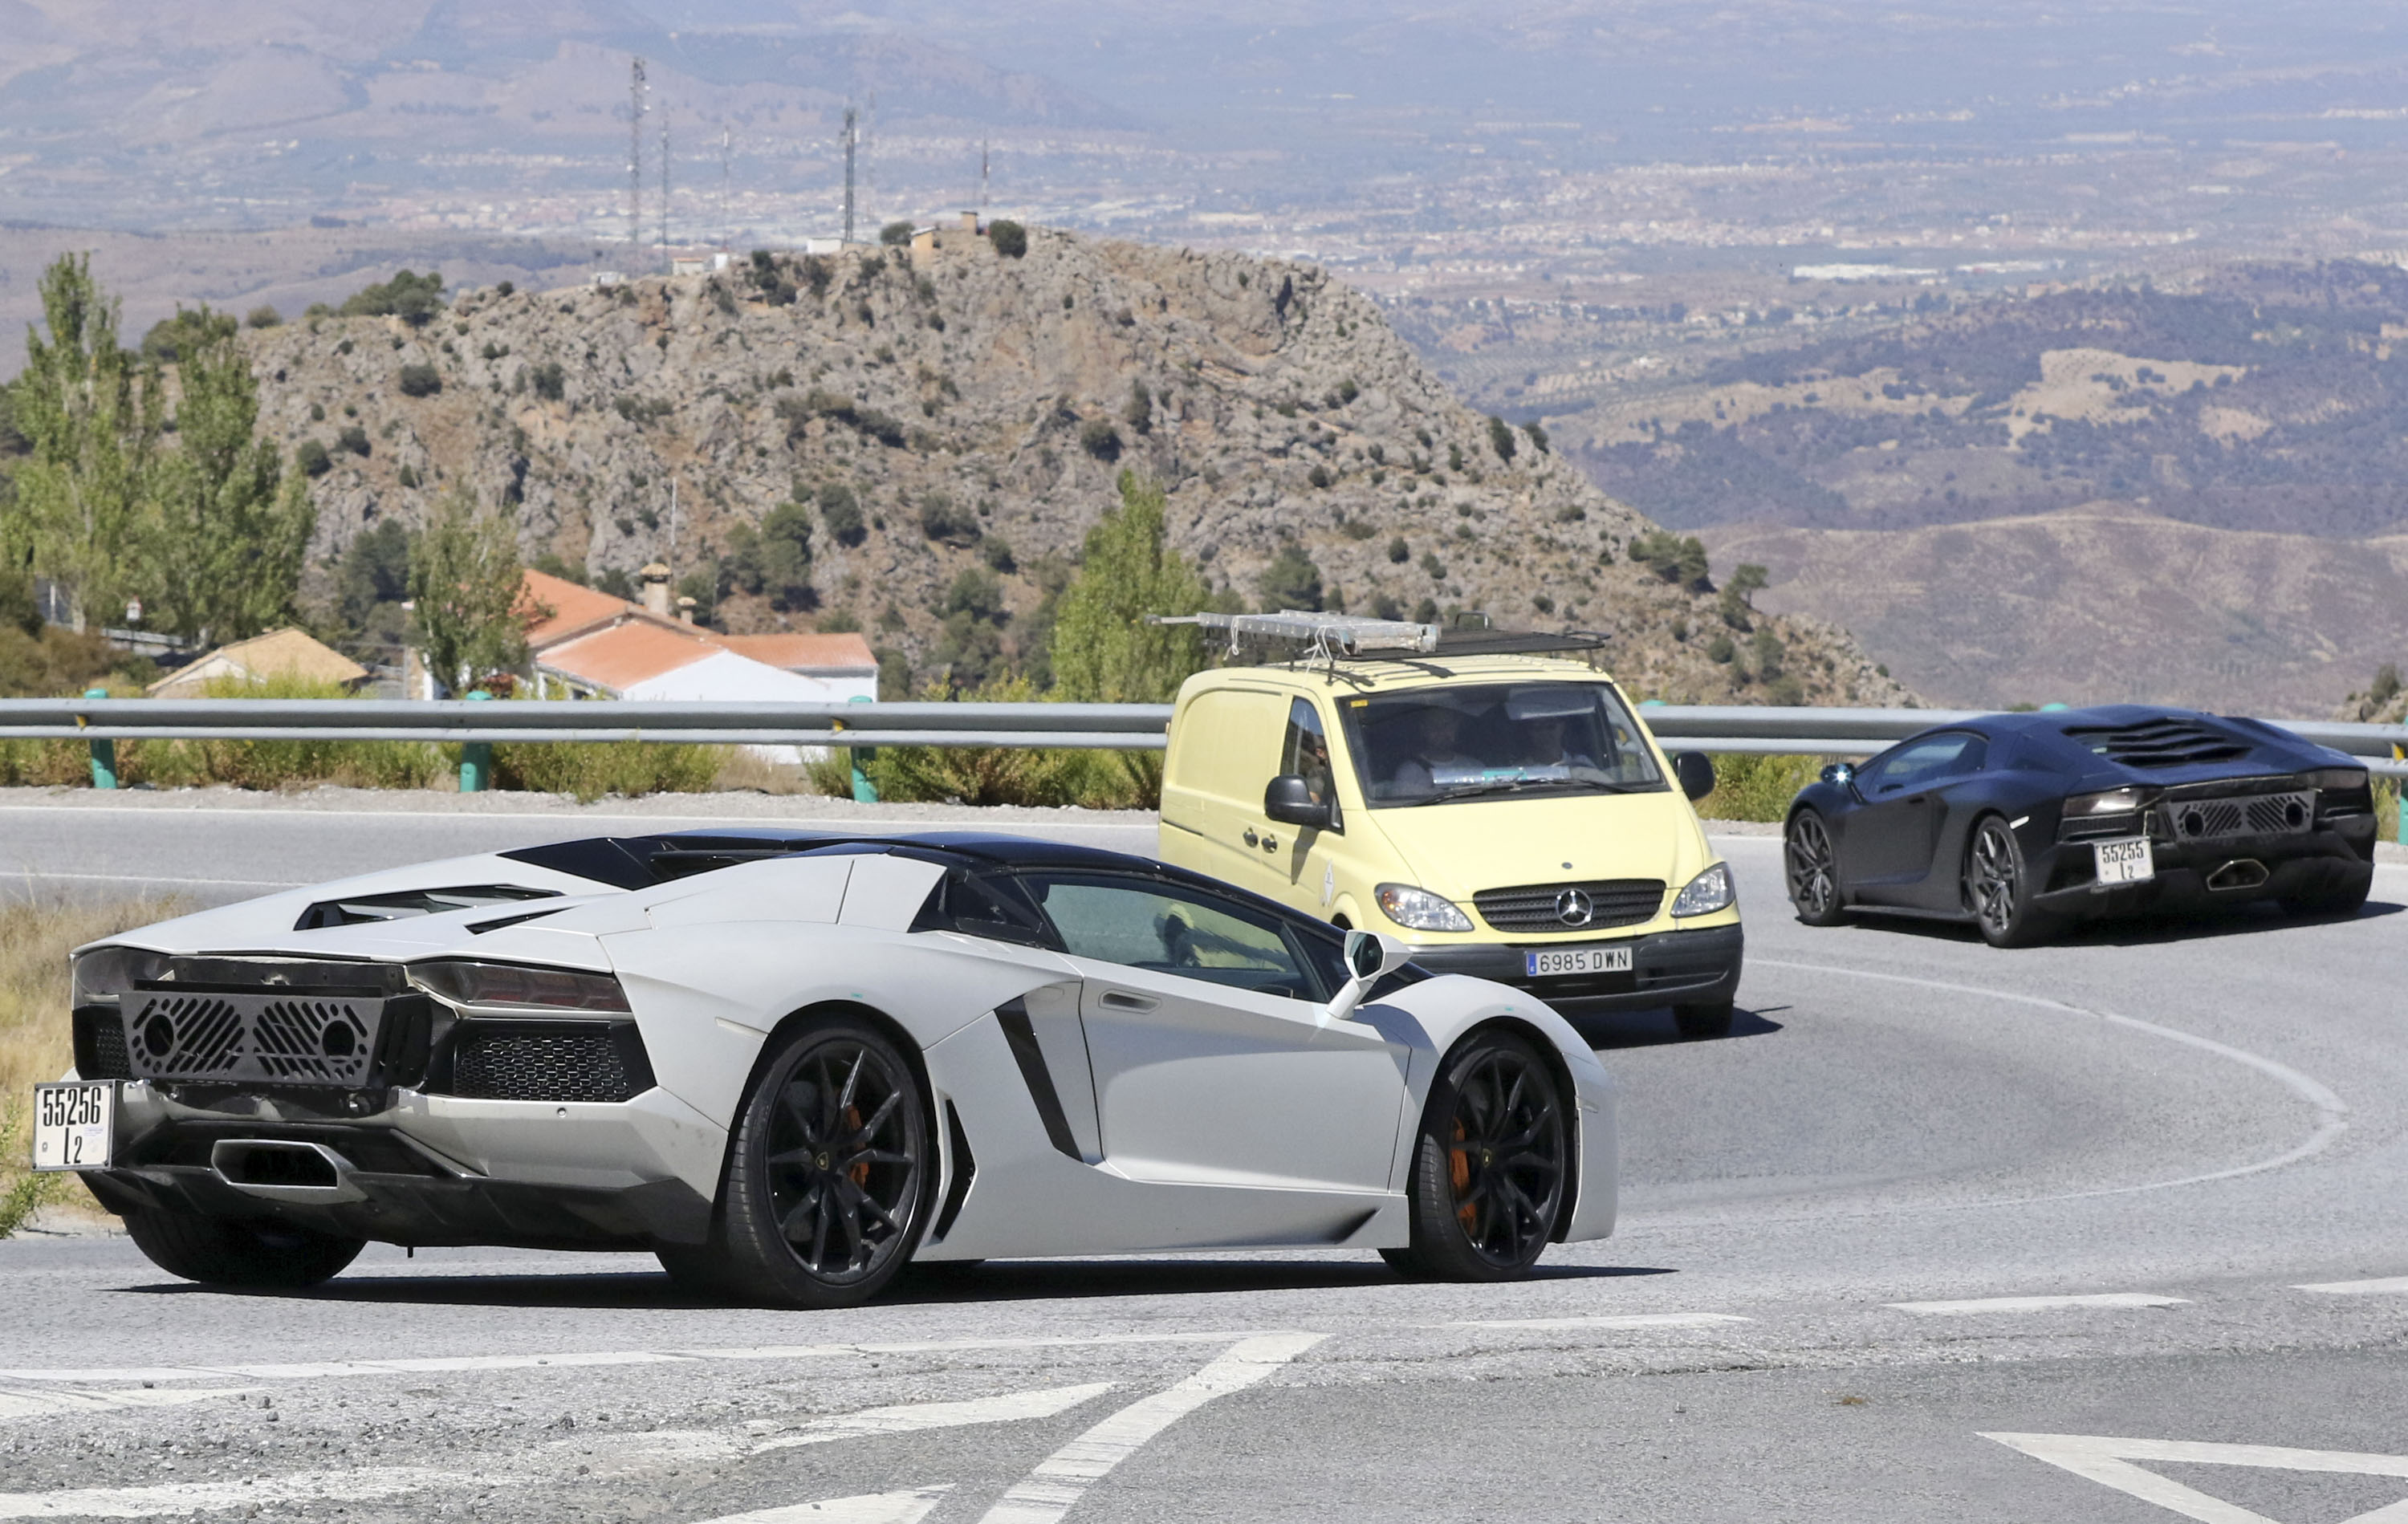 2019 Lamborghini Aventador Performante Top Speed